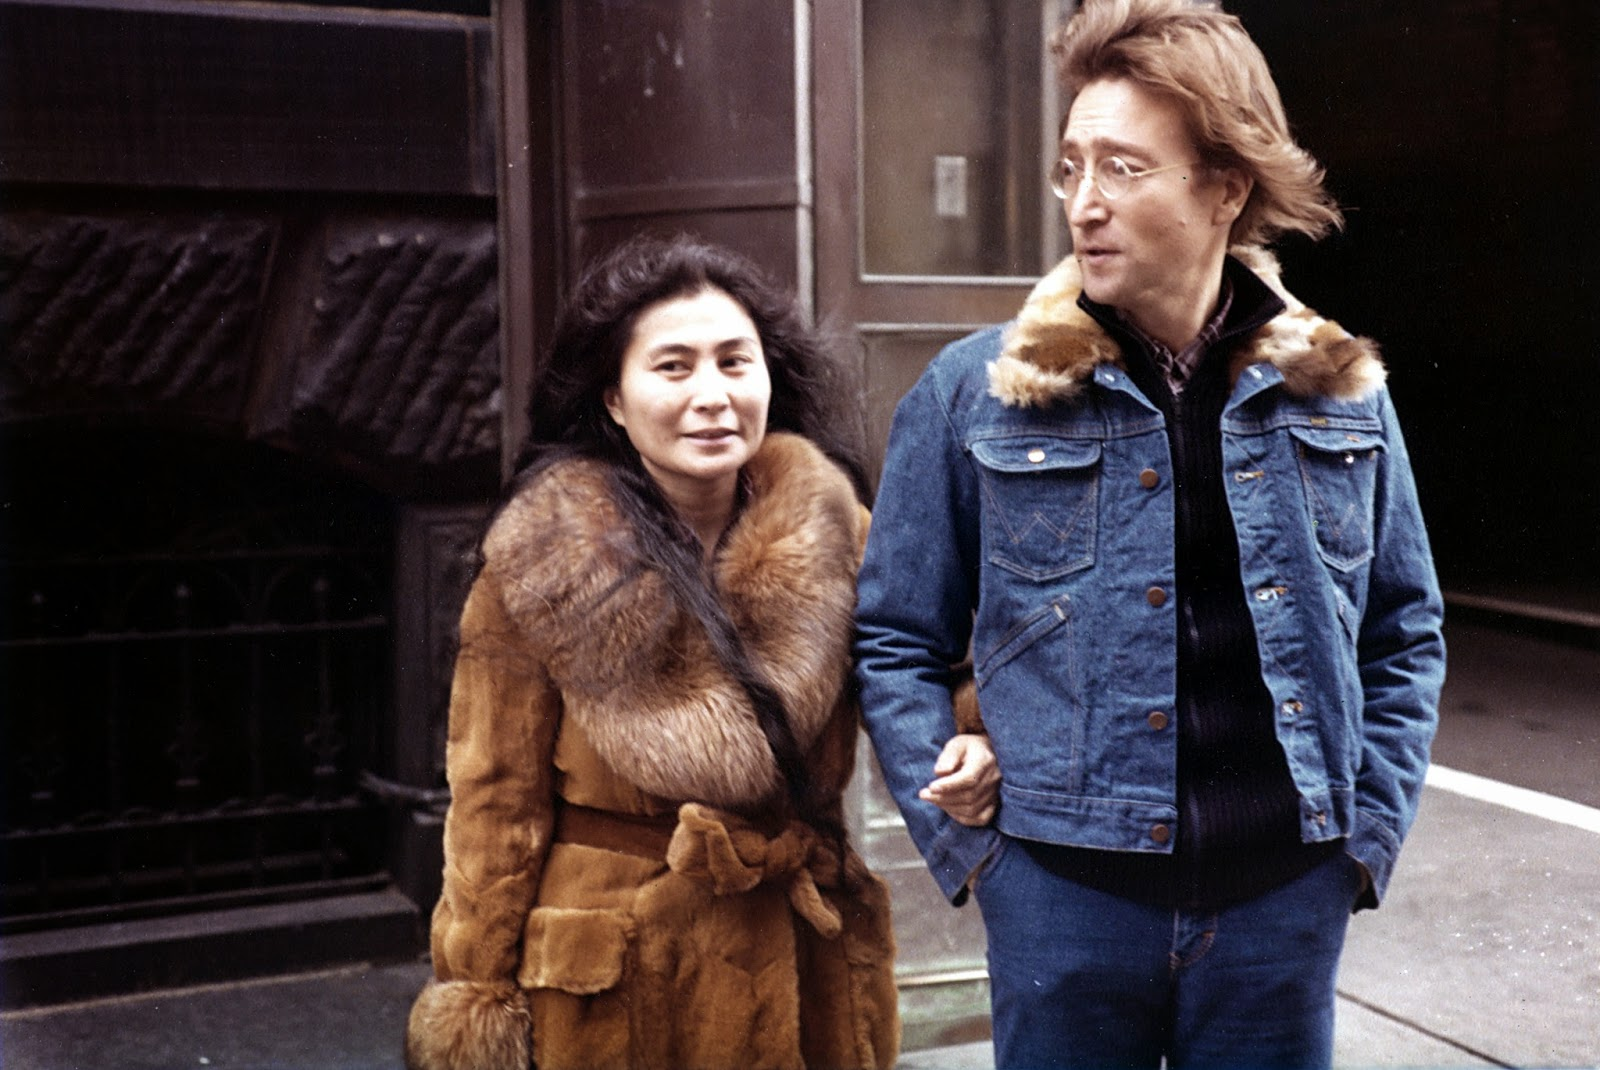 These Candid Snapshots Of John Lennon On The Streets Taken